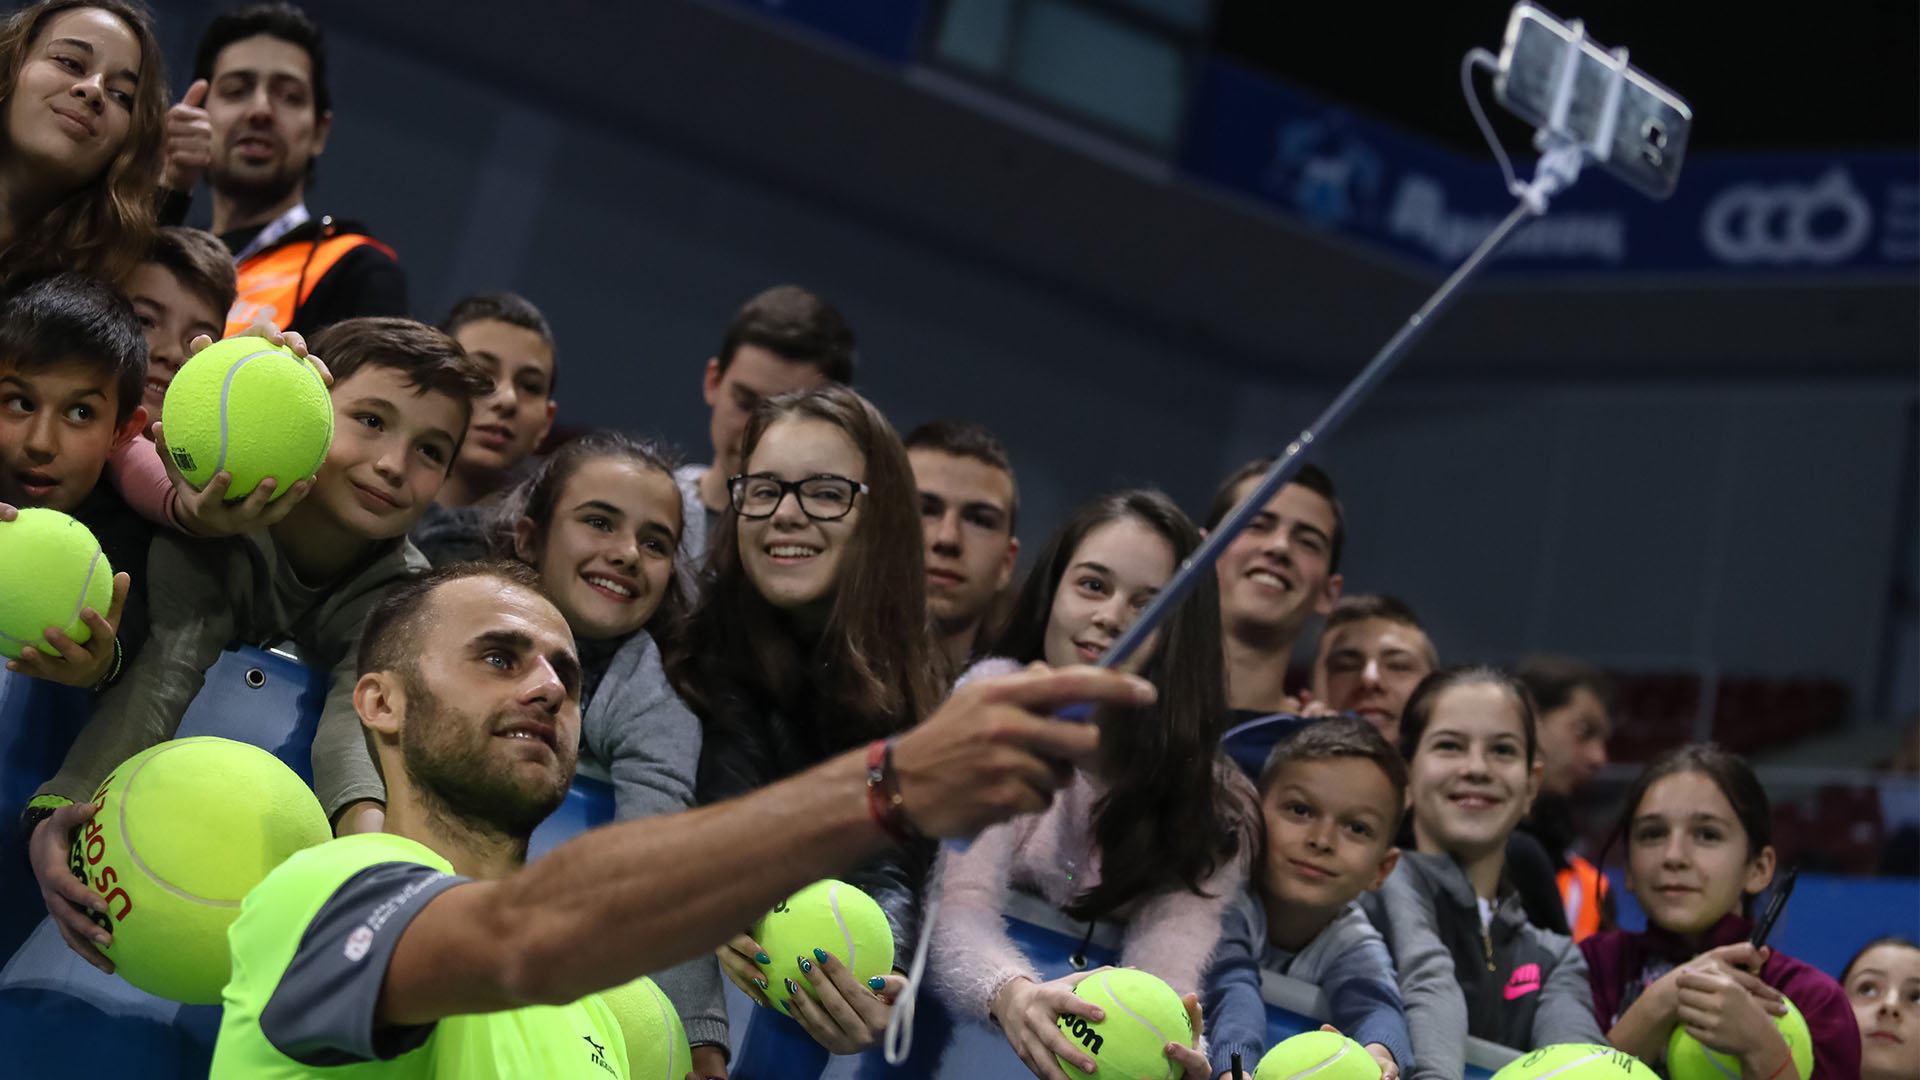 Marius Copil, Sofia Open